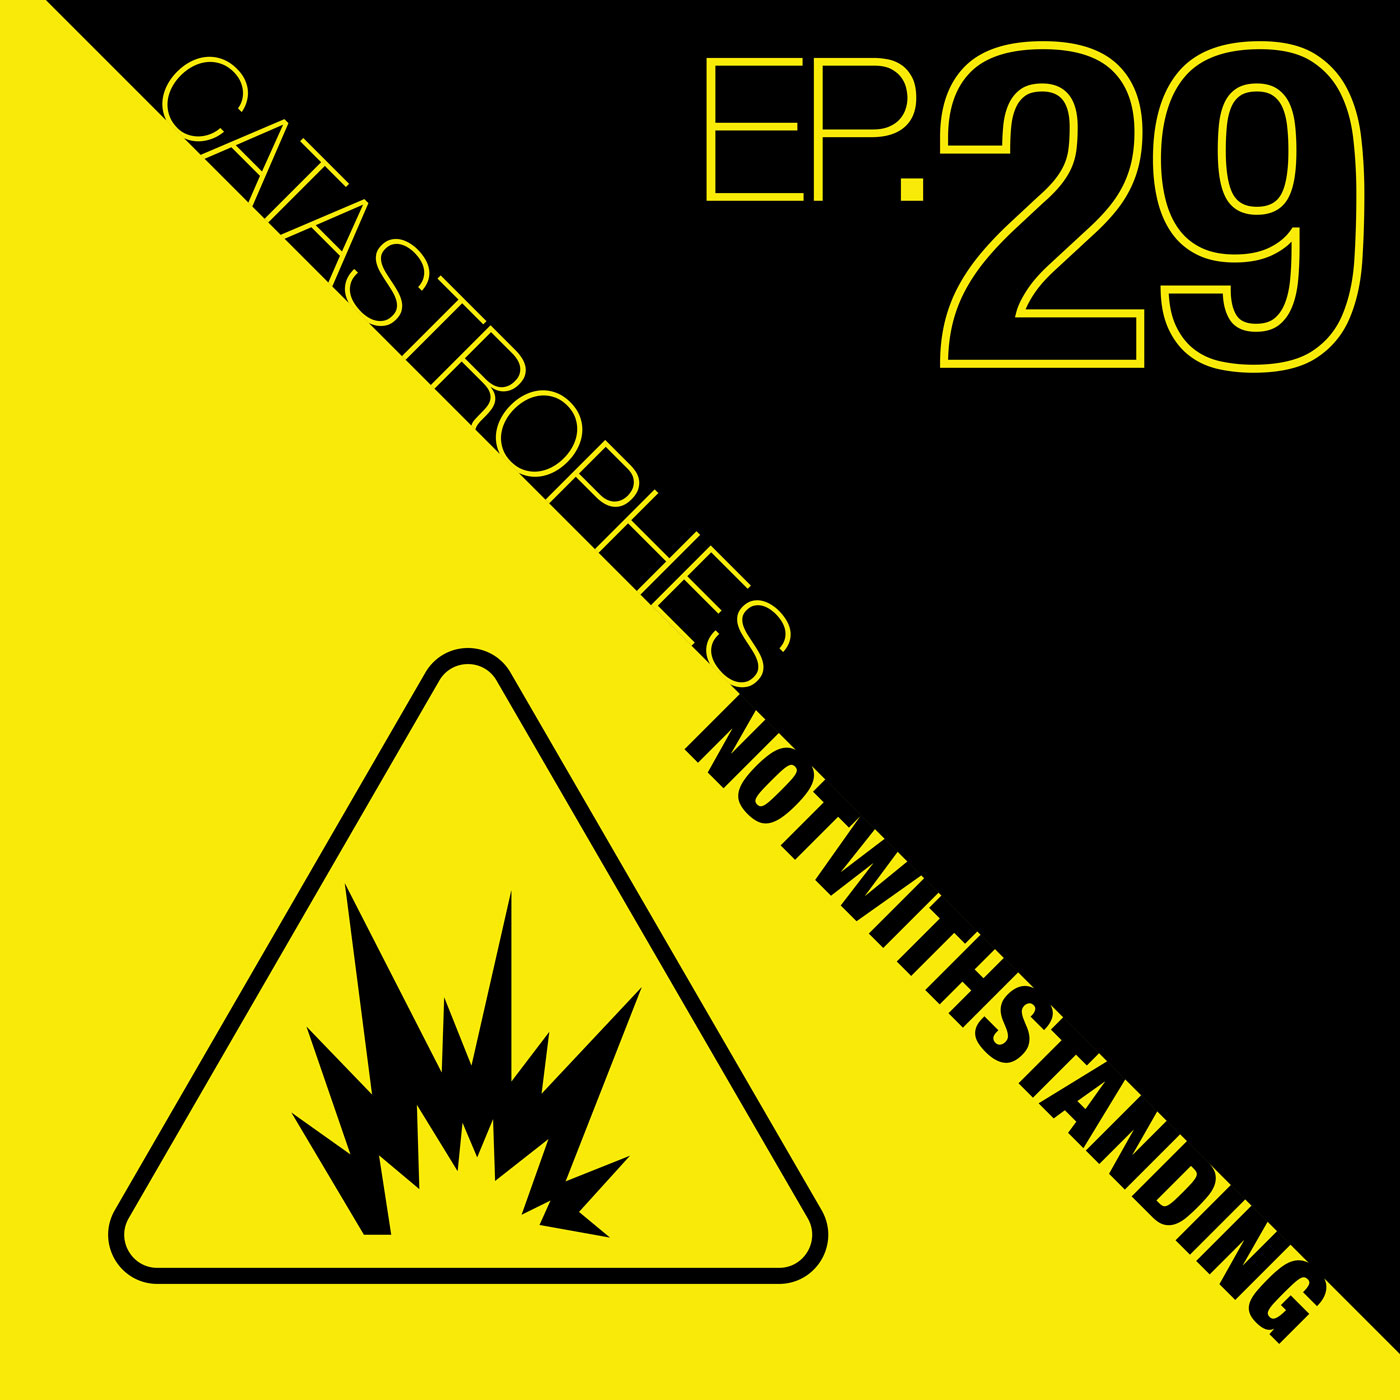 Cover Image of Catastrophes Notwithstanding Episode 29